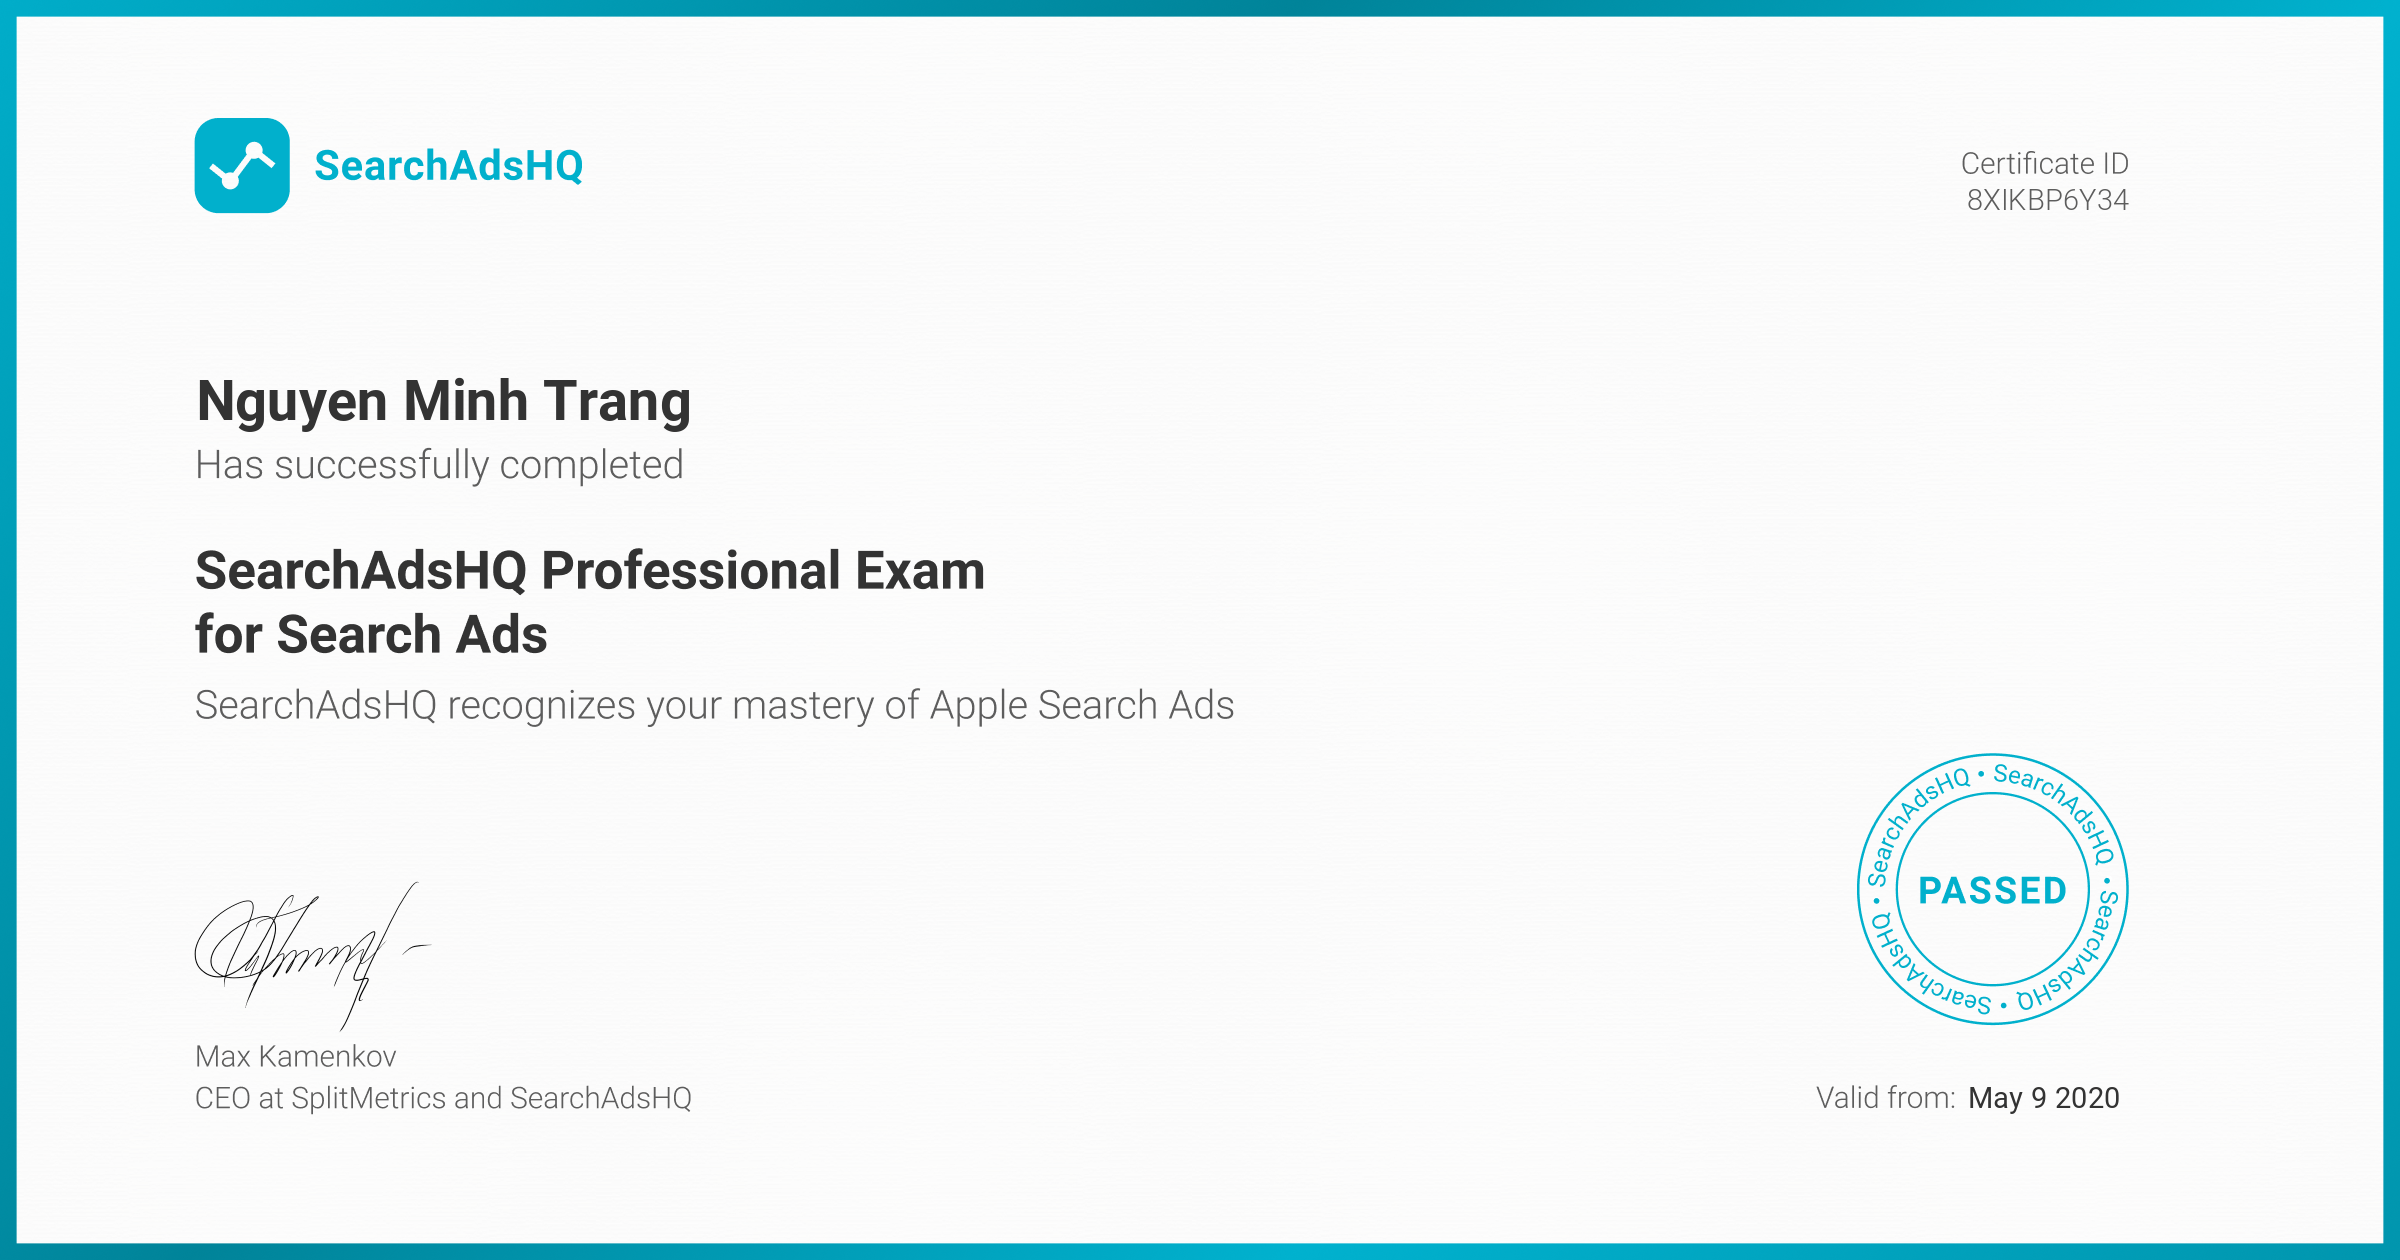 Certificate for Nguyen Minh Trang | SearchAdsHQ Professional Exam for Search Ads